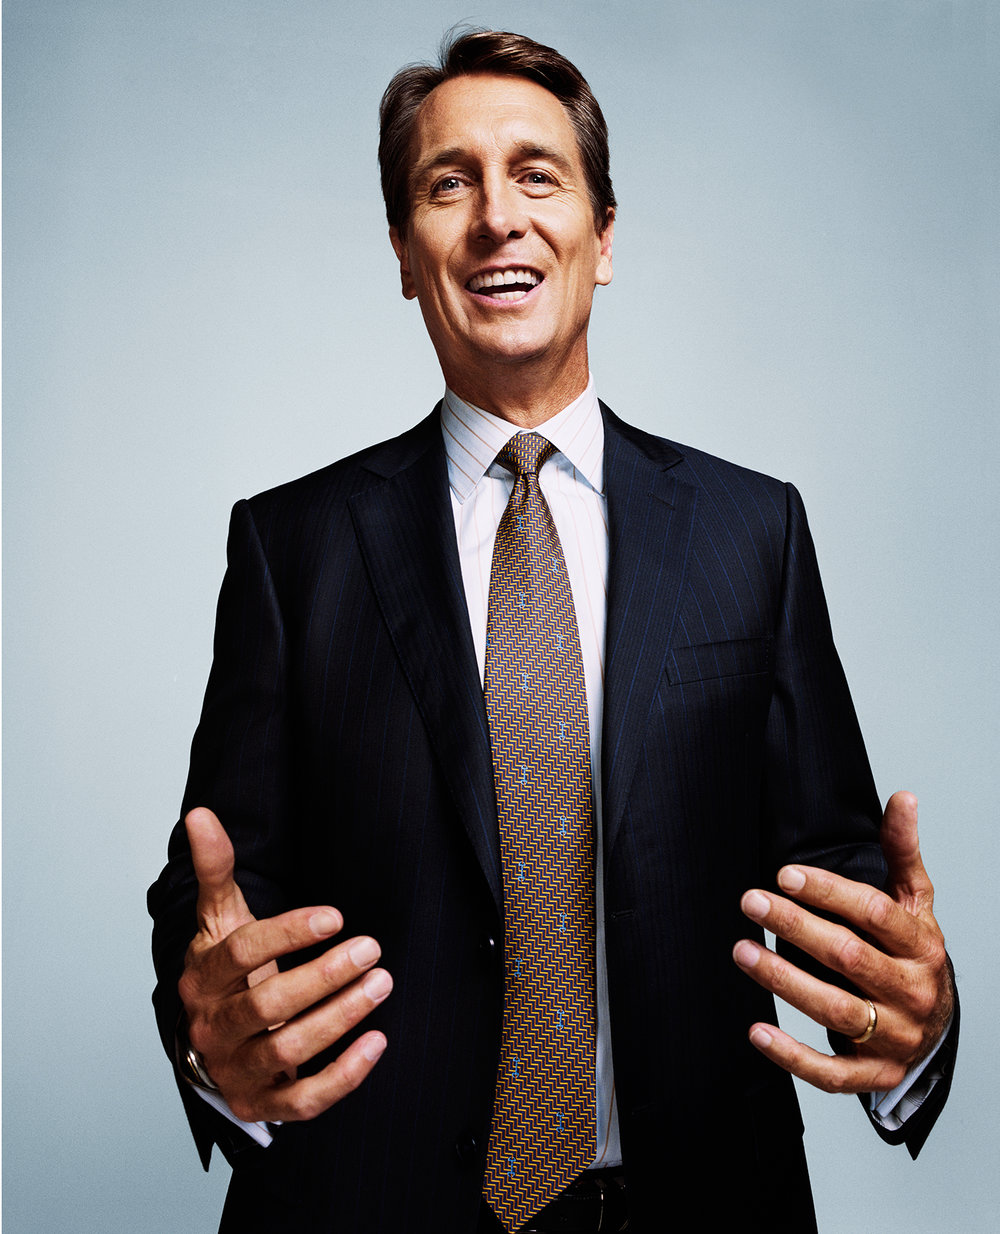 Chris Collinsworth - Miami, FL